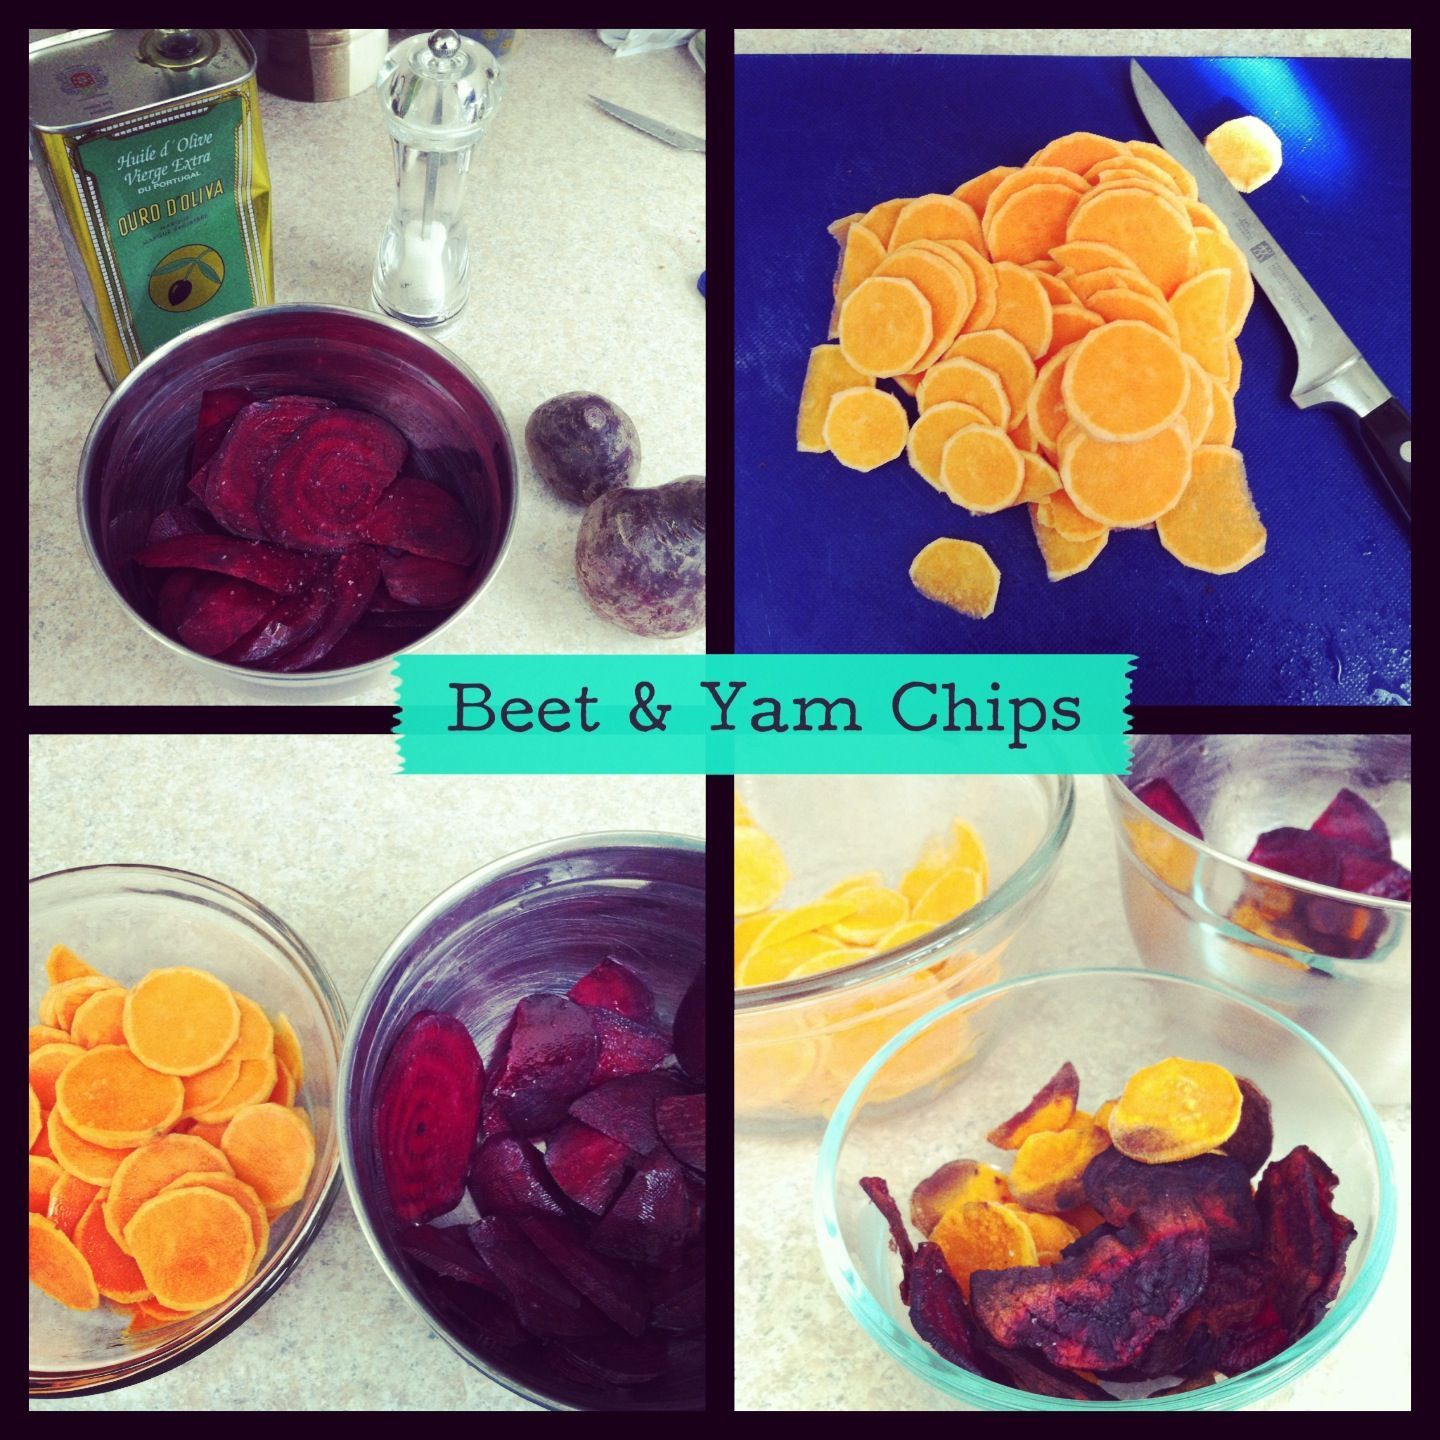 Yam & Beet Chips.   Ingredients: yams, beets, olive oil, sea salt. Drizzle a bit of olive oil in a bowl of thinly sliced yams/beets and toss. Place them on a cookie sheet and add sea salt. Bake at 350F for 10-15 mins each side.   Super-easy & healthy snack!